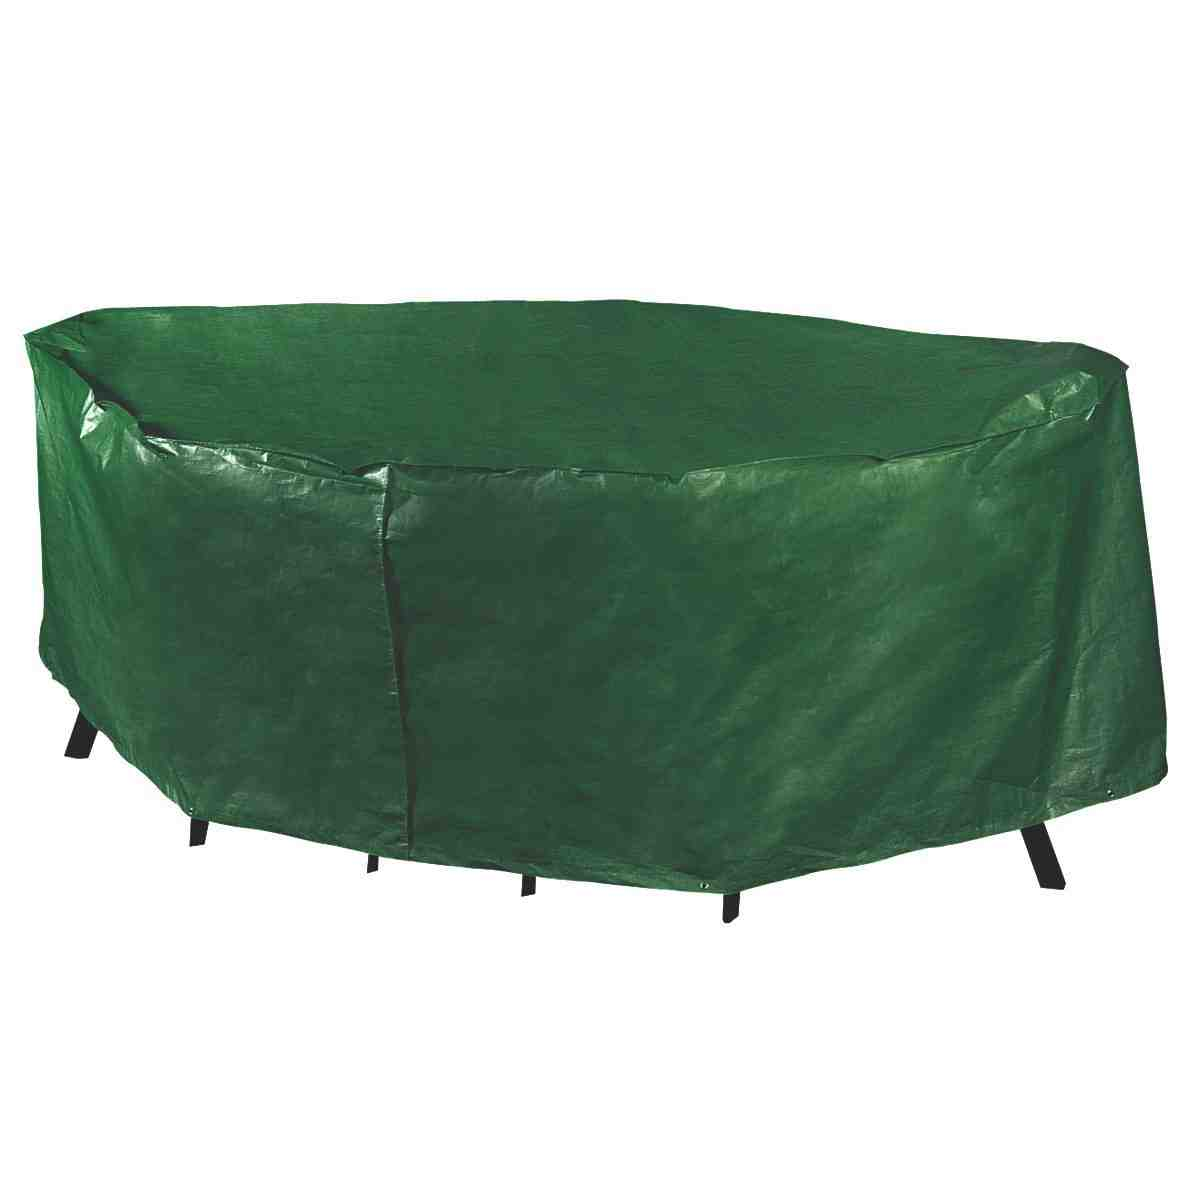 Waterproof covers for outdoor furniture home furniture for Chair covers for garden furniture